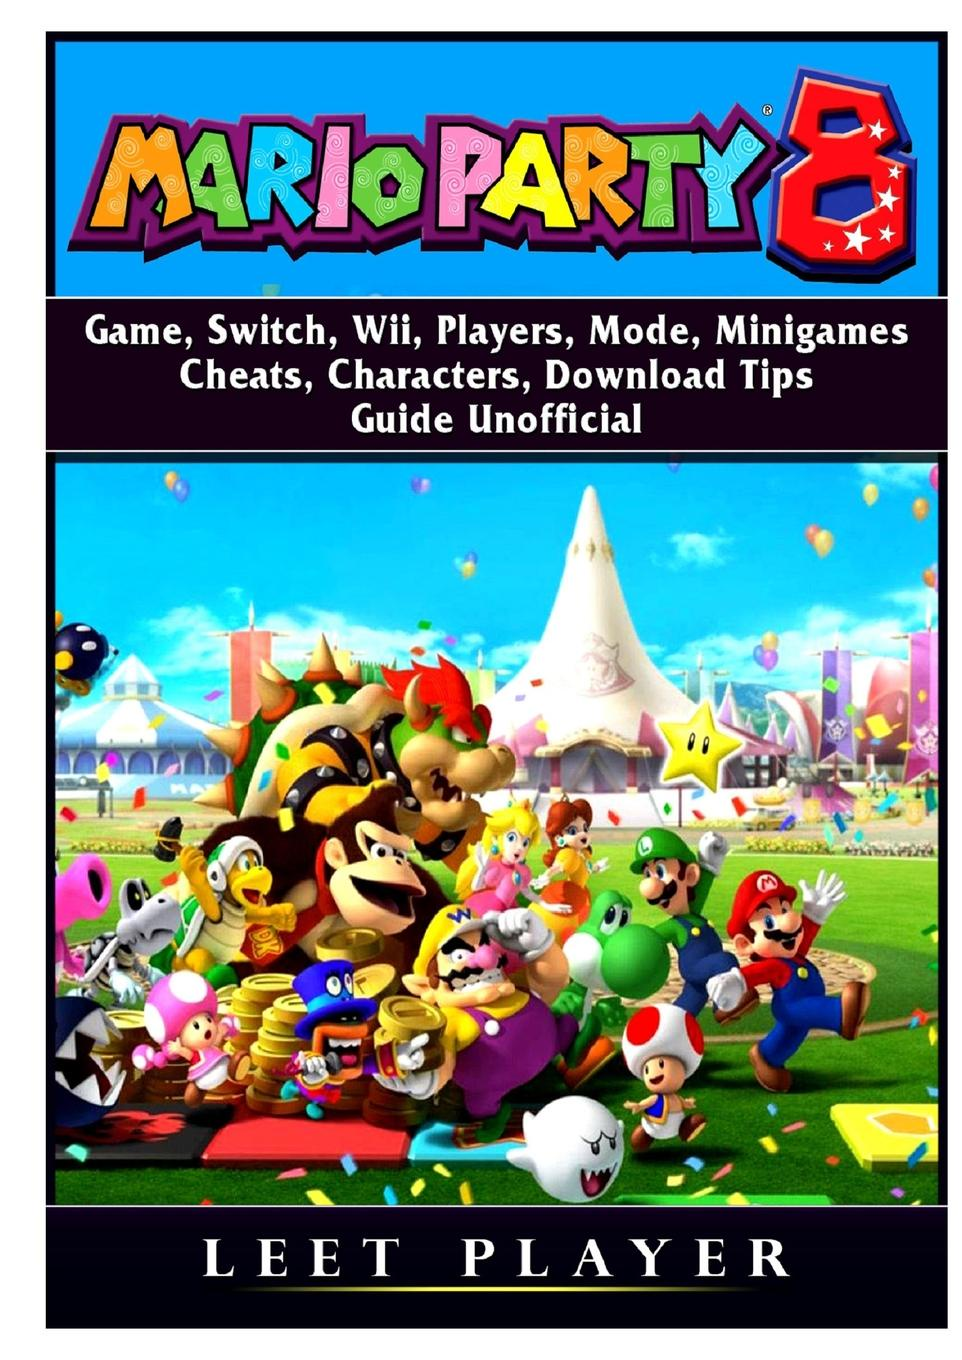 Leet Player Super Mario Party 8 Game, Switch, Wii, Players, Mode, Minigames, Cheats, Characters, Download, Tips, Guide Unofficial